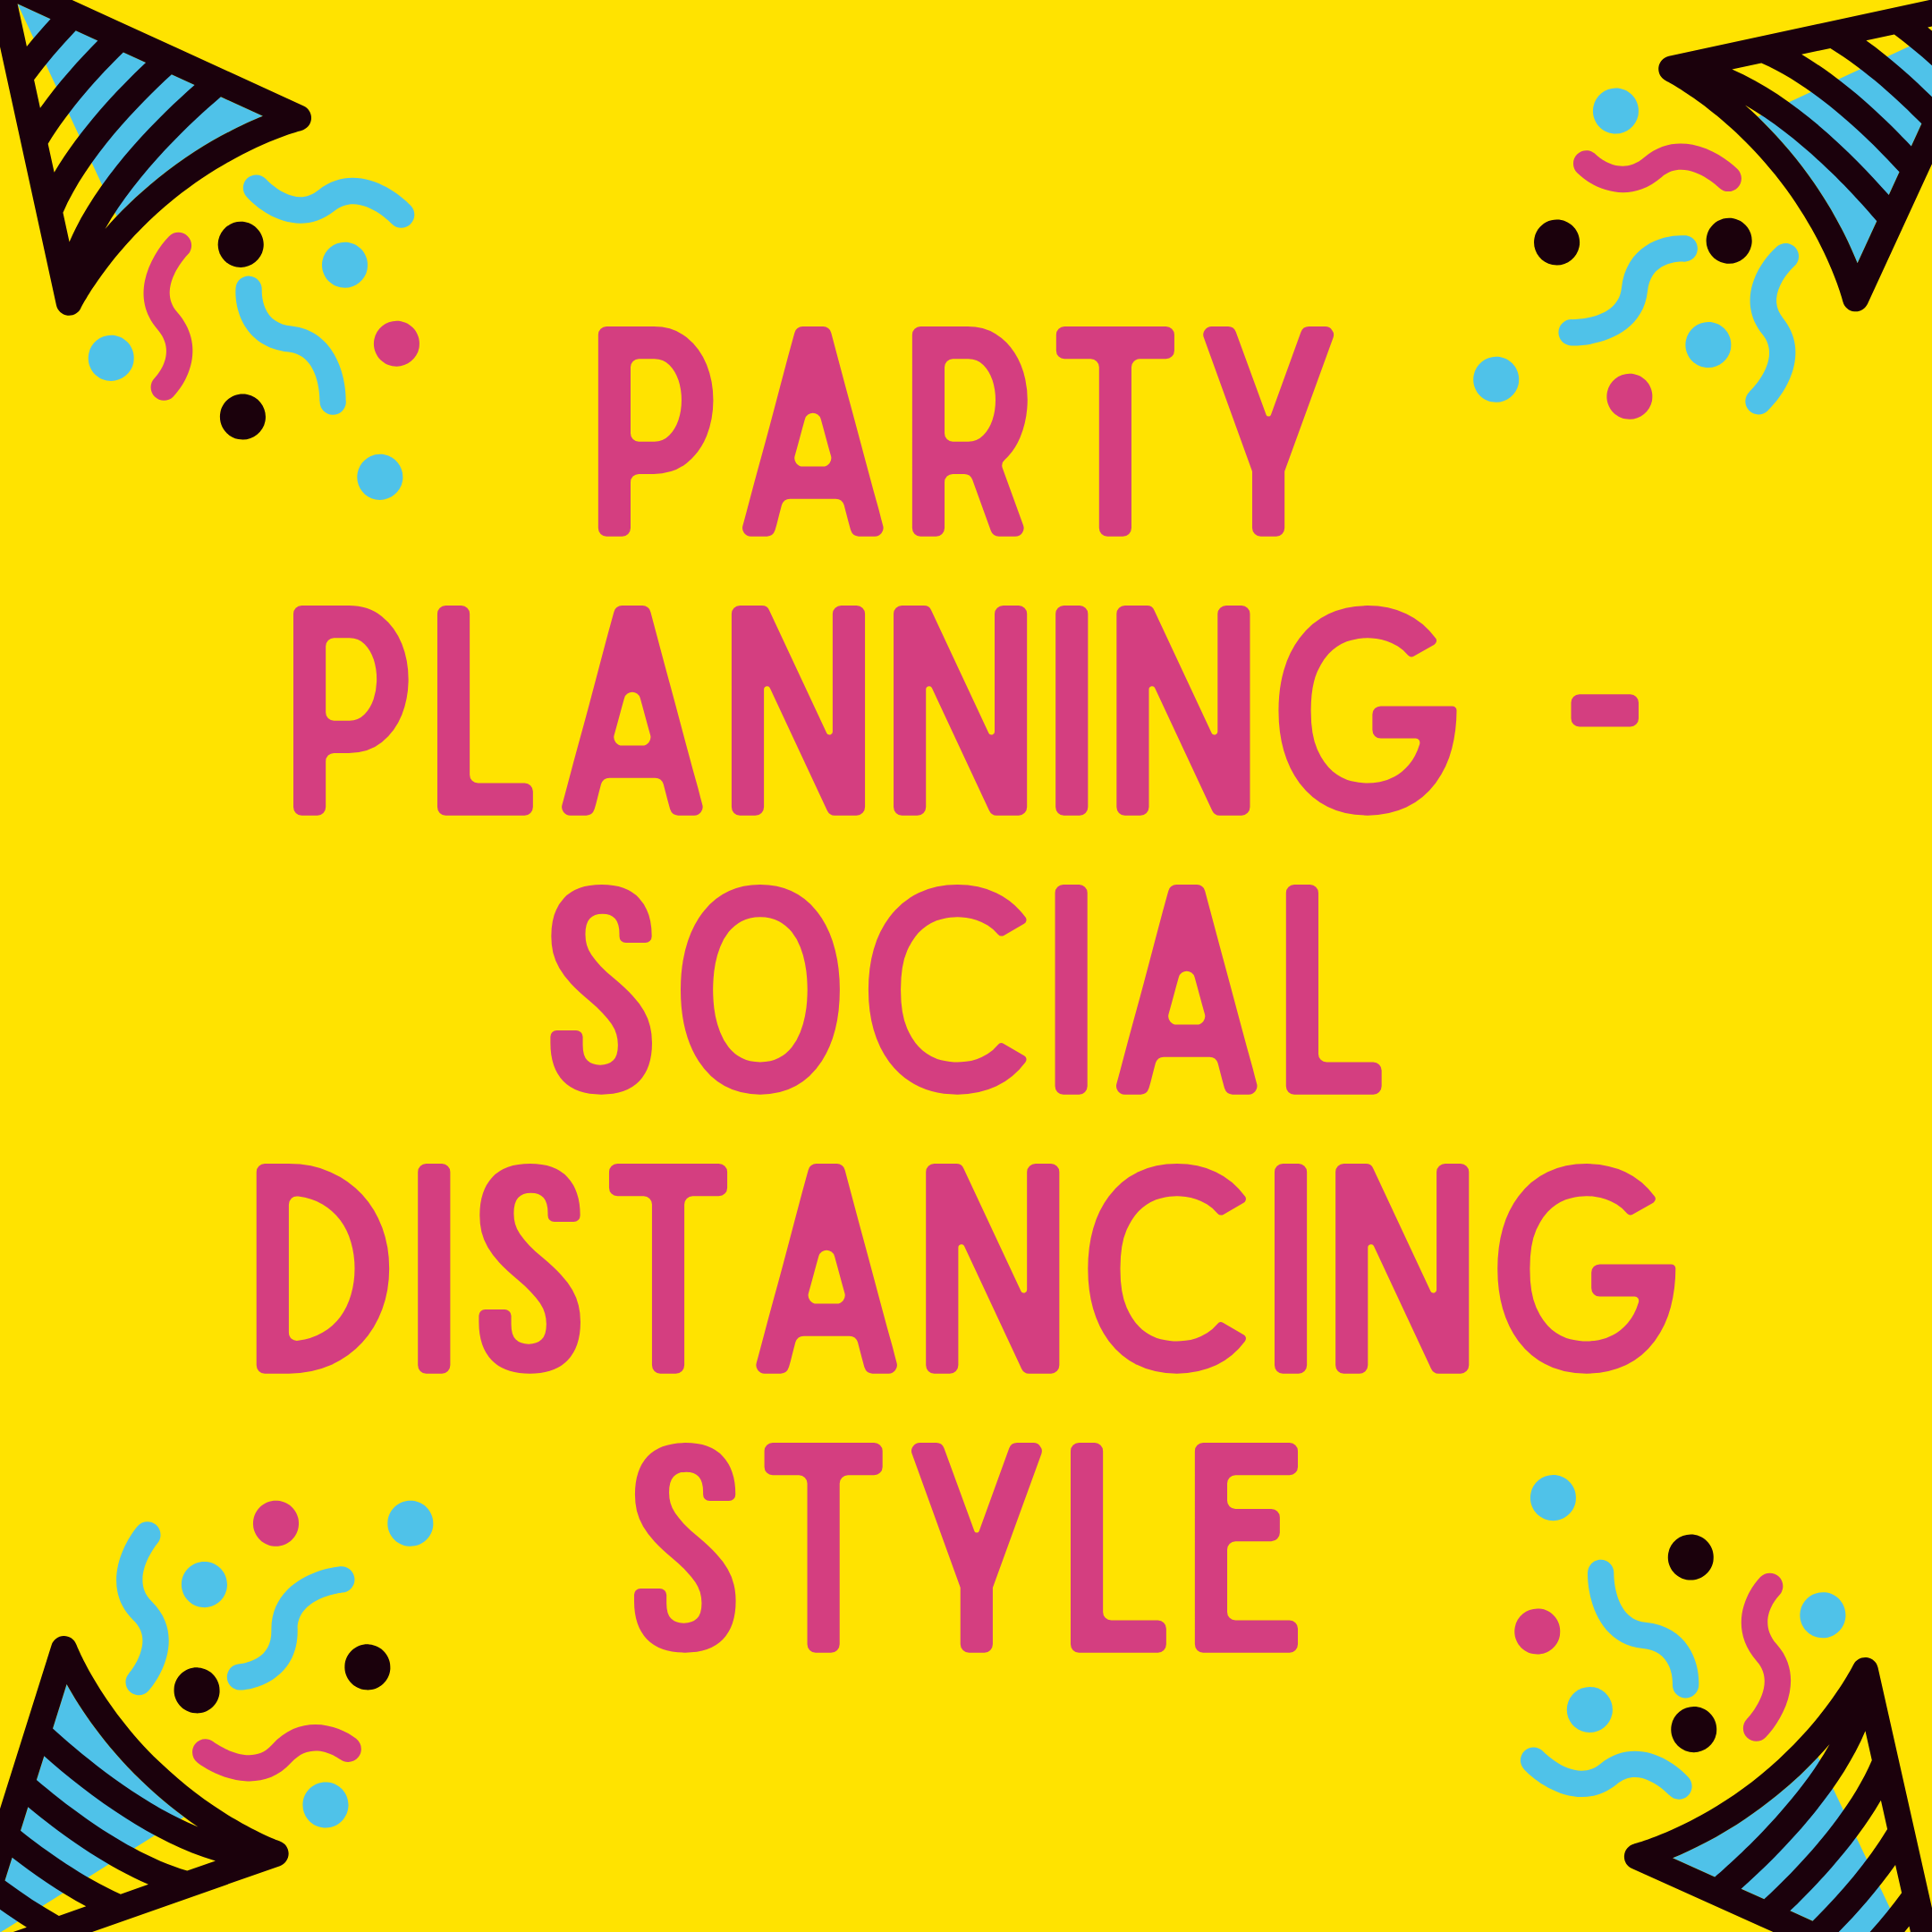 Party Planning - Social Distancing Style